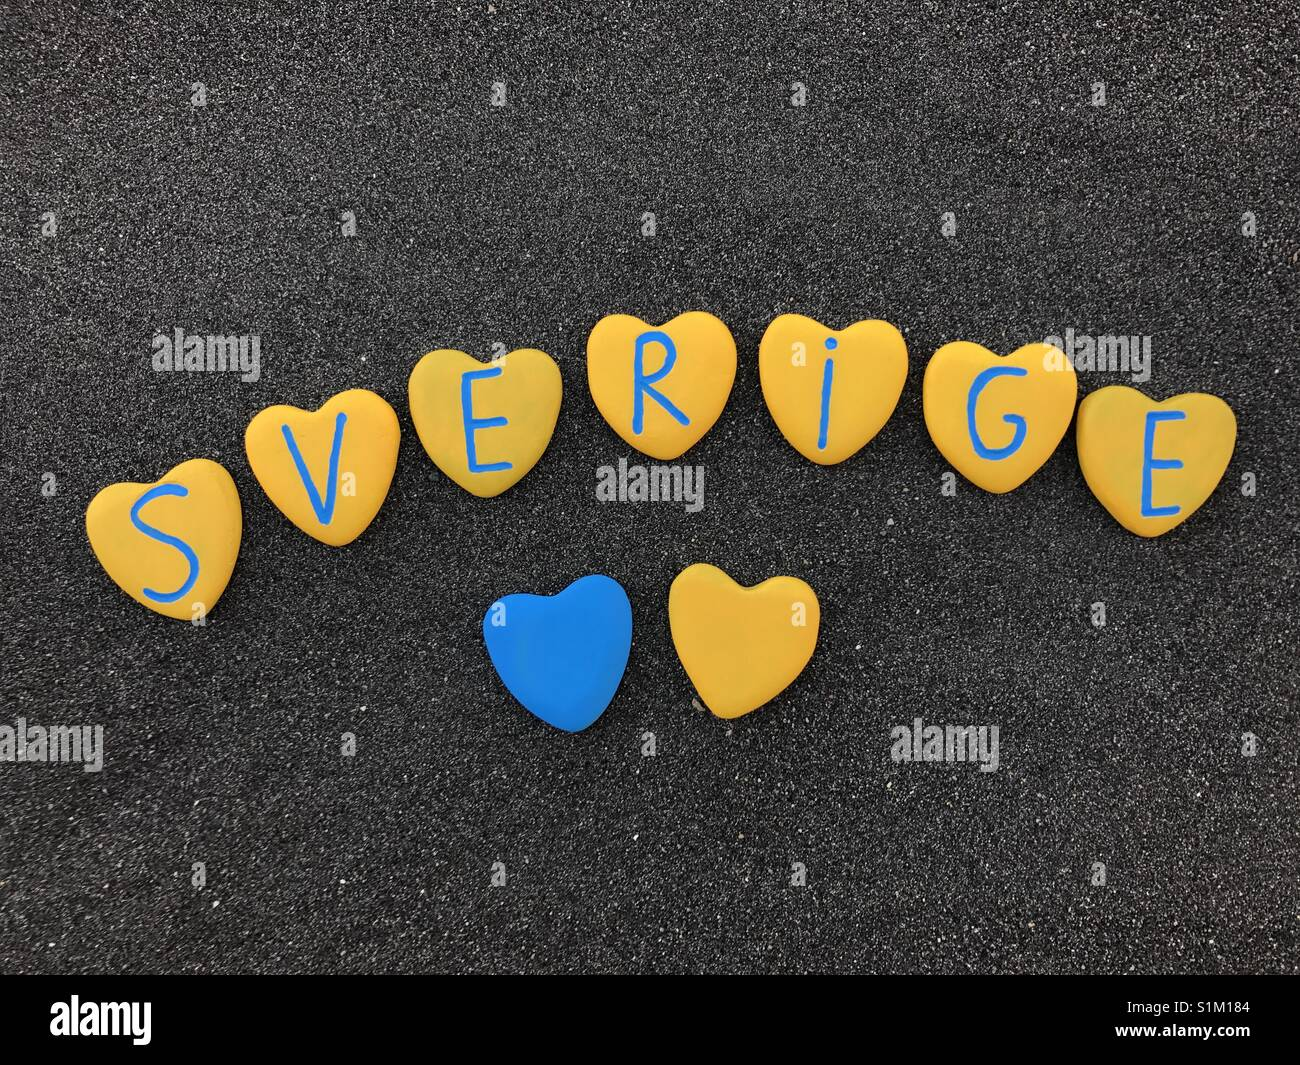 Sverige, Sweden, country name with national colors and heart stones letters - Stock Image